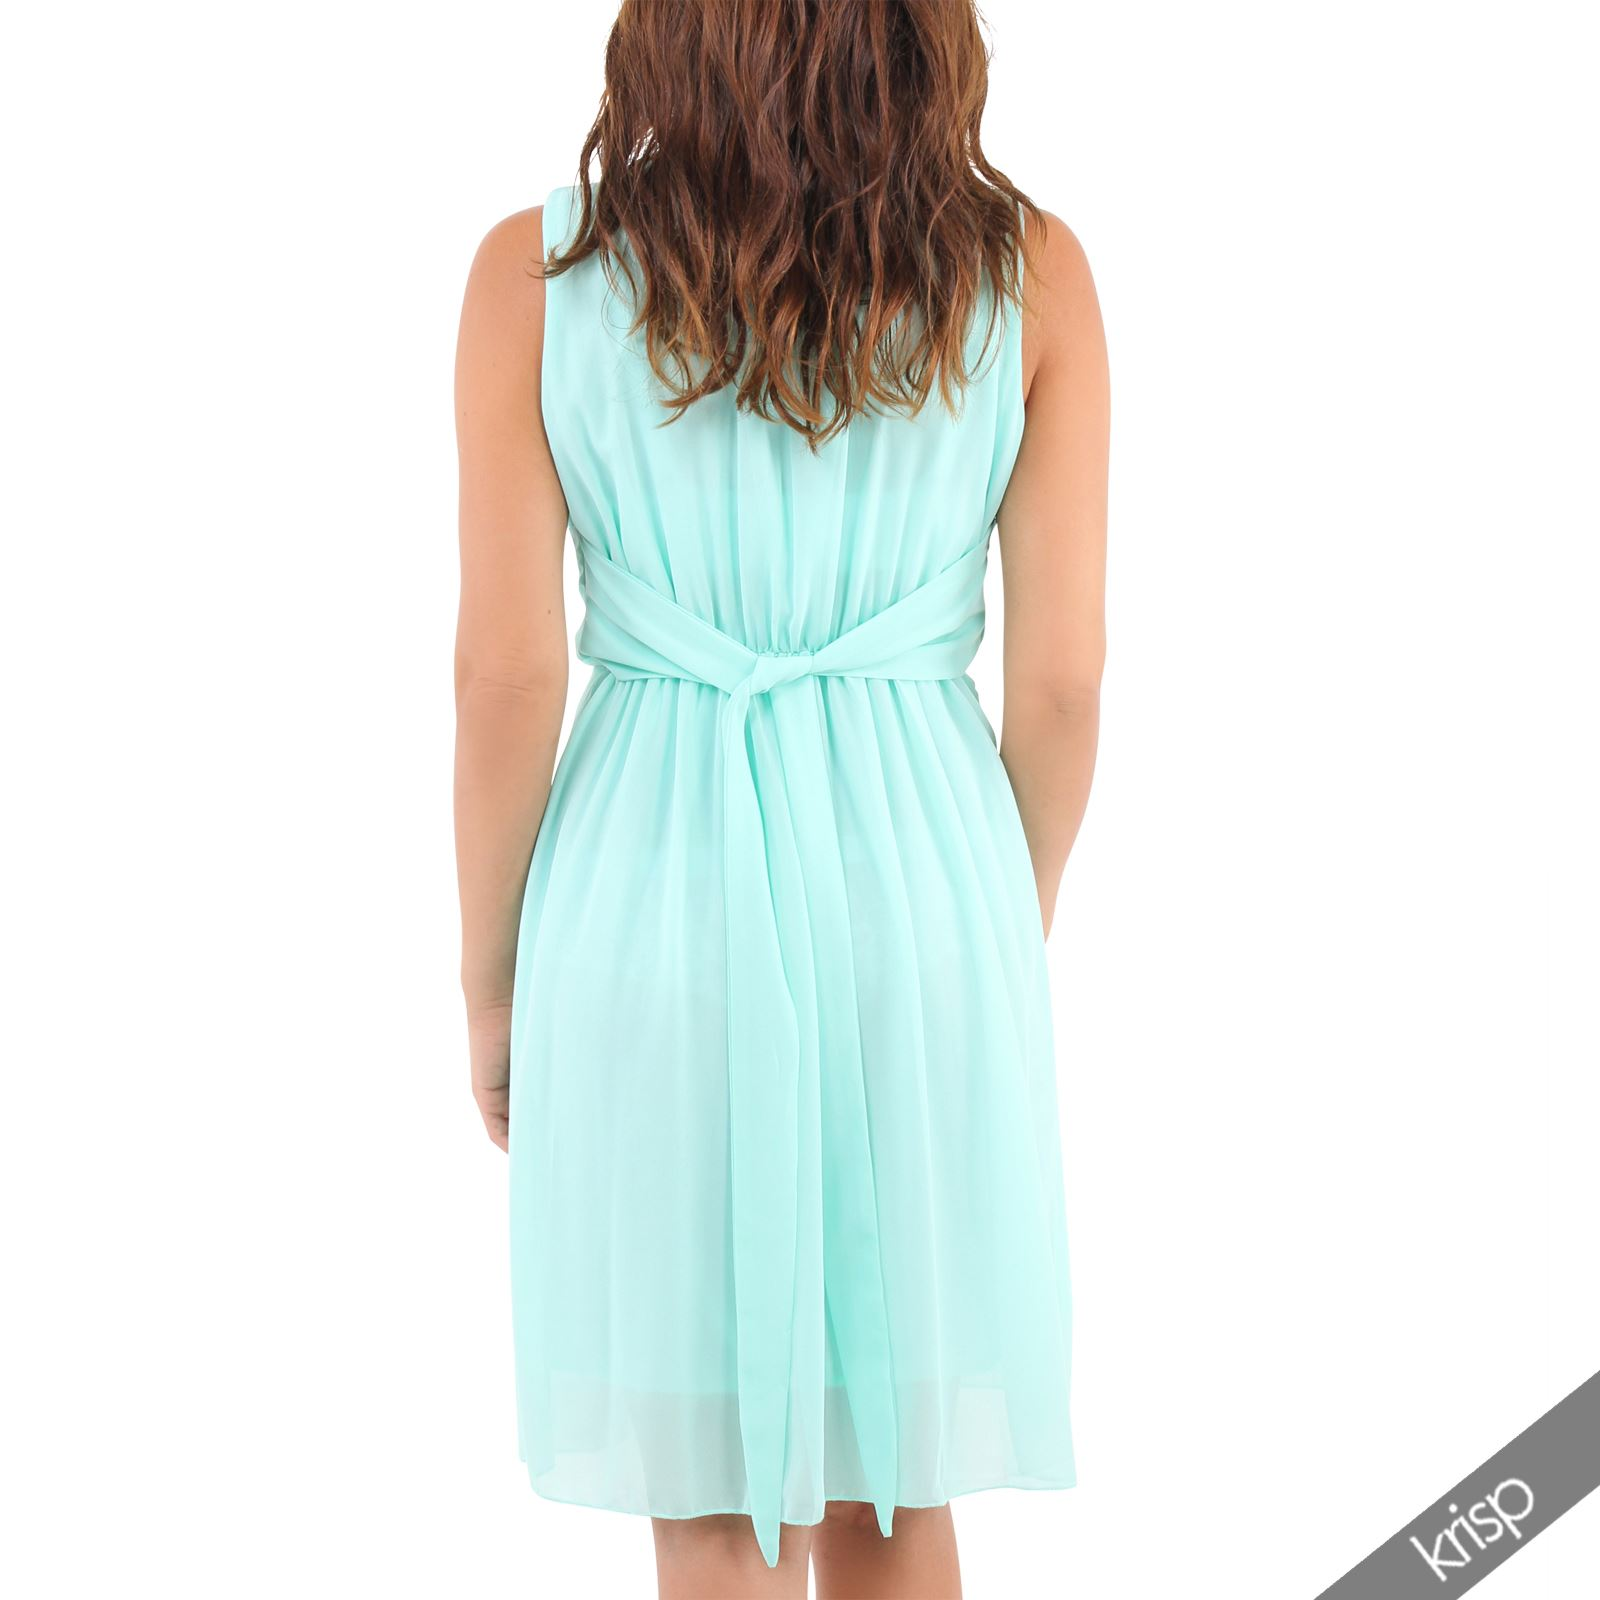 Summer Favourite Grecian Dresses: Womens Drape Pleated Chiffon Grecian Tunic Midi Dress